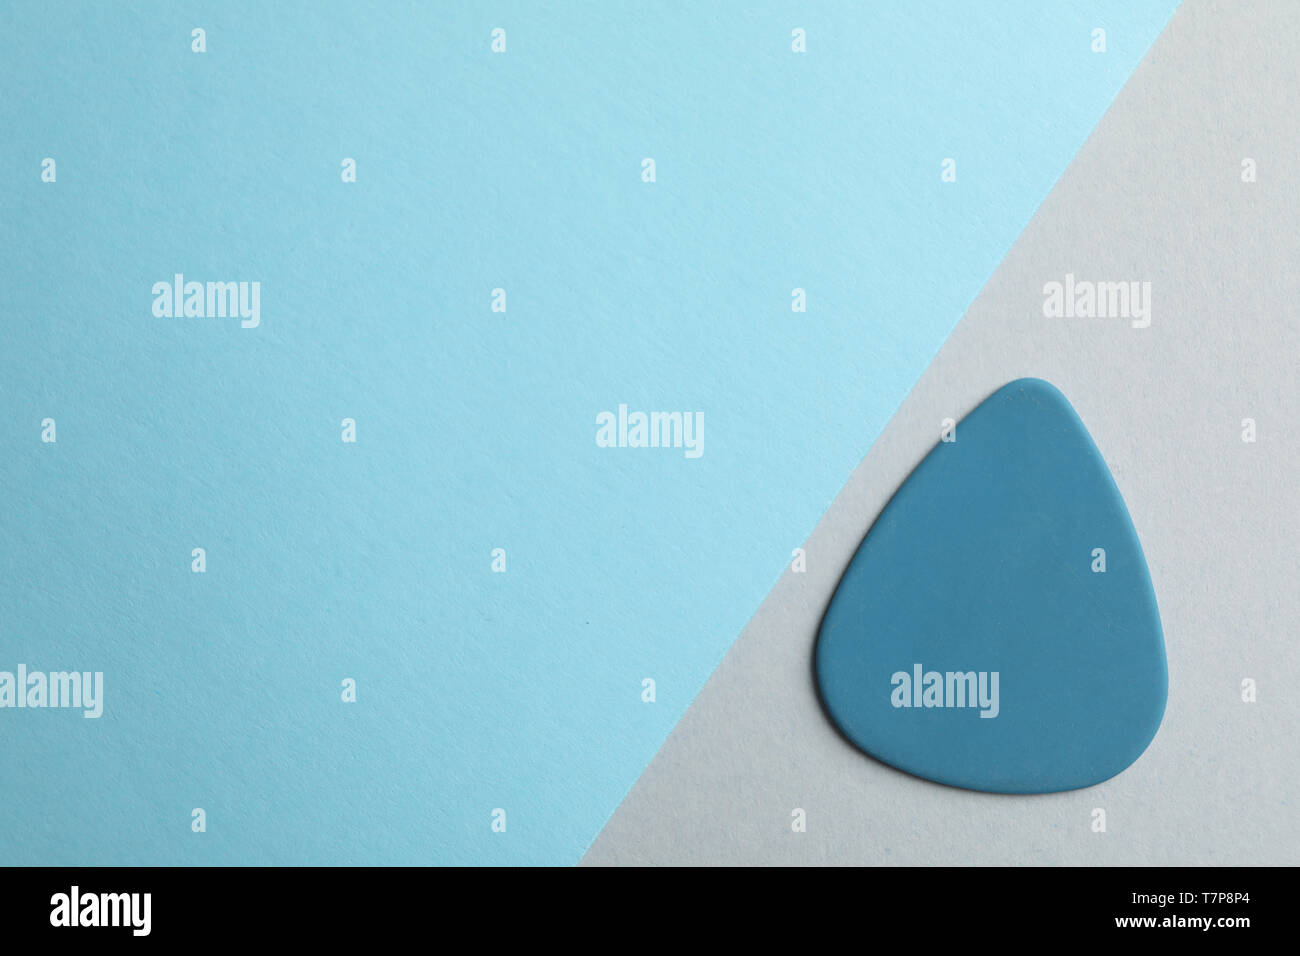 Blue guitar pick on two tone background, space for text - Stock Image